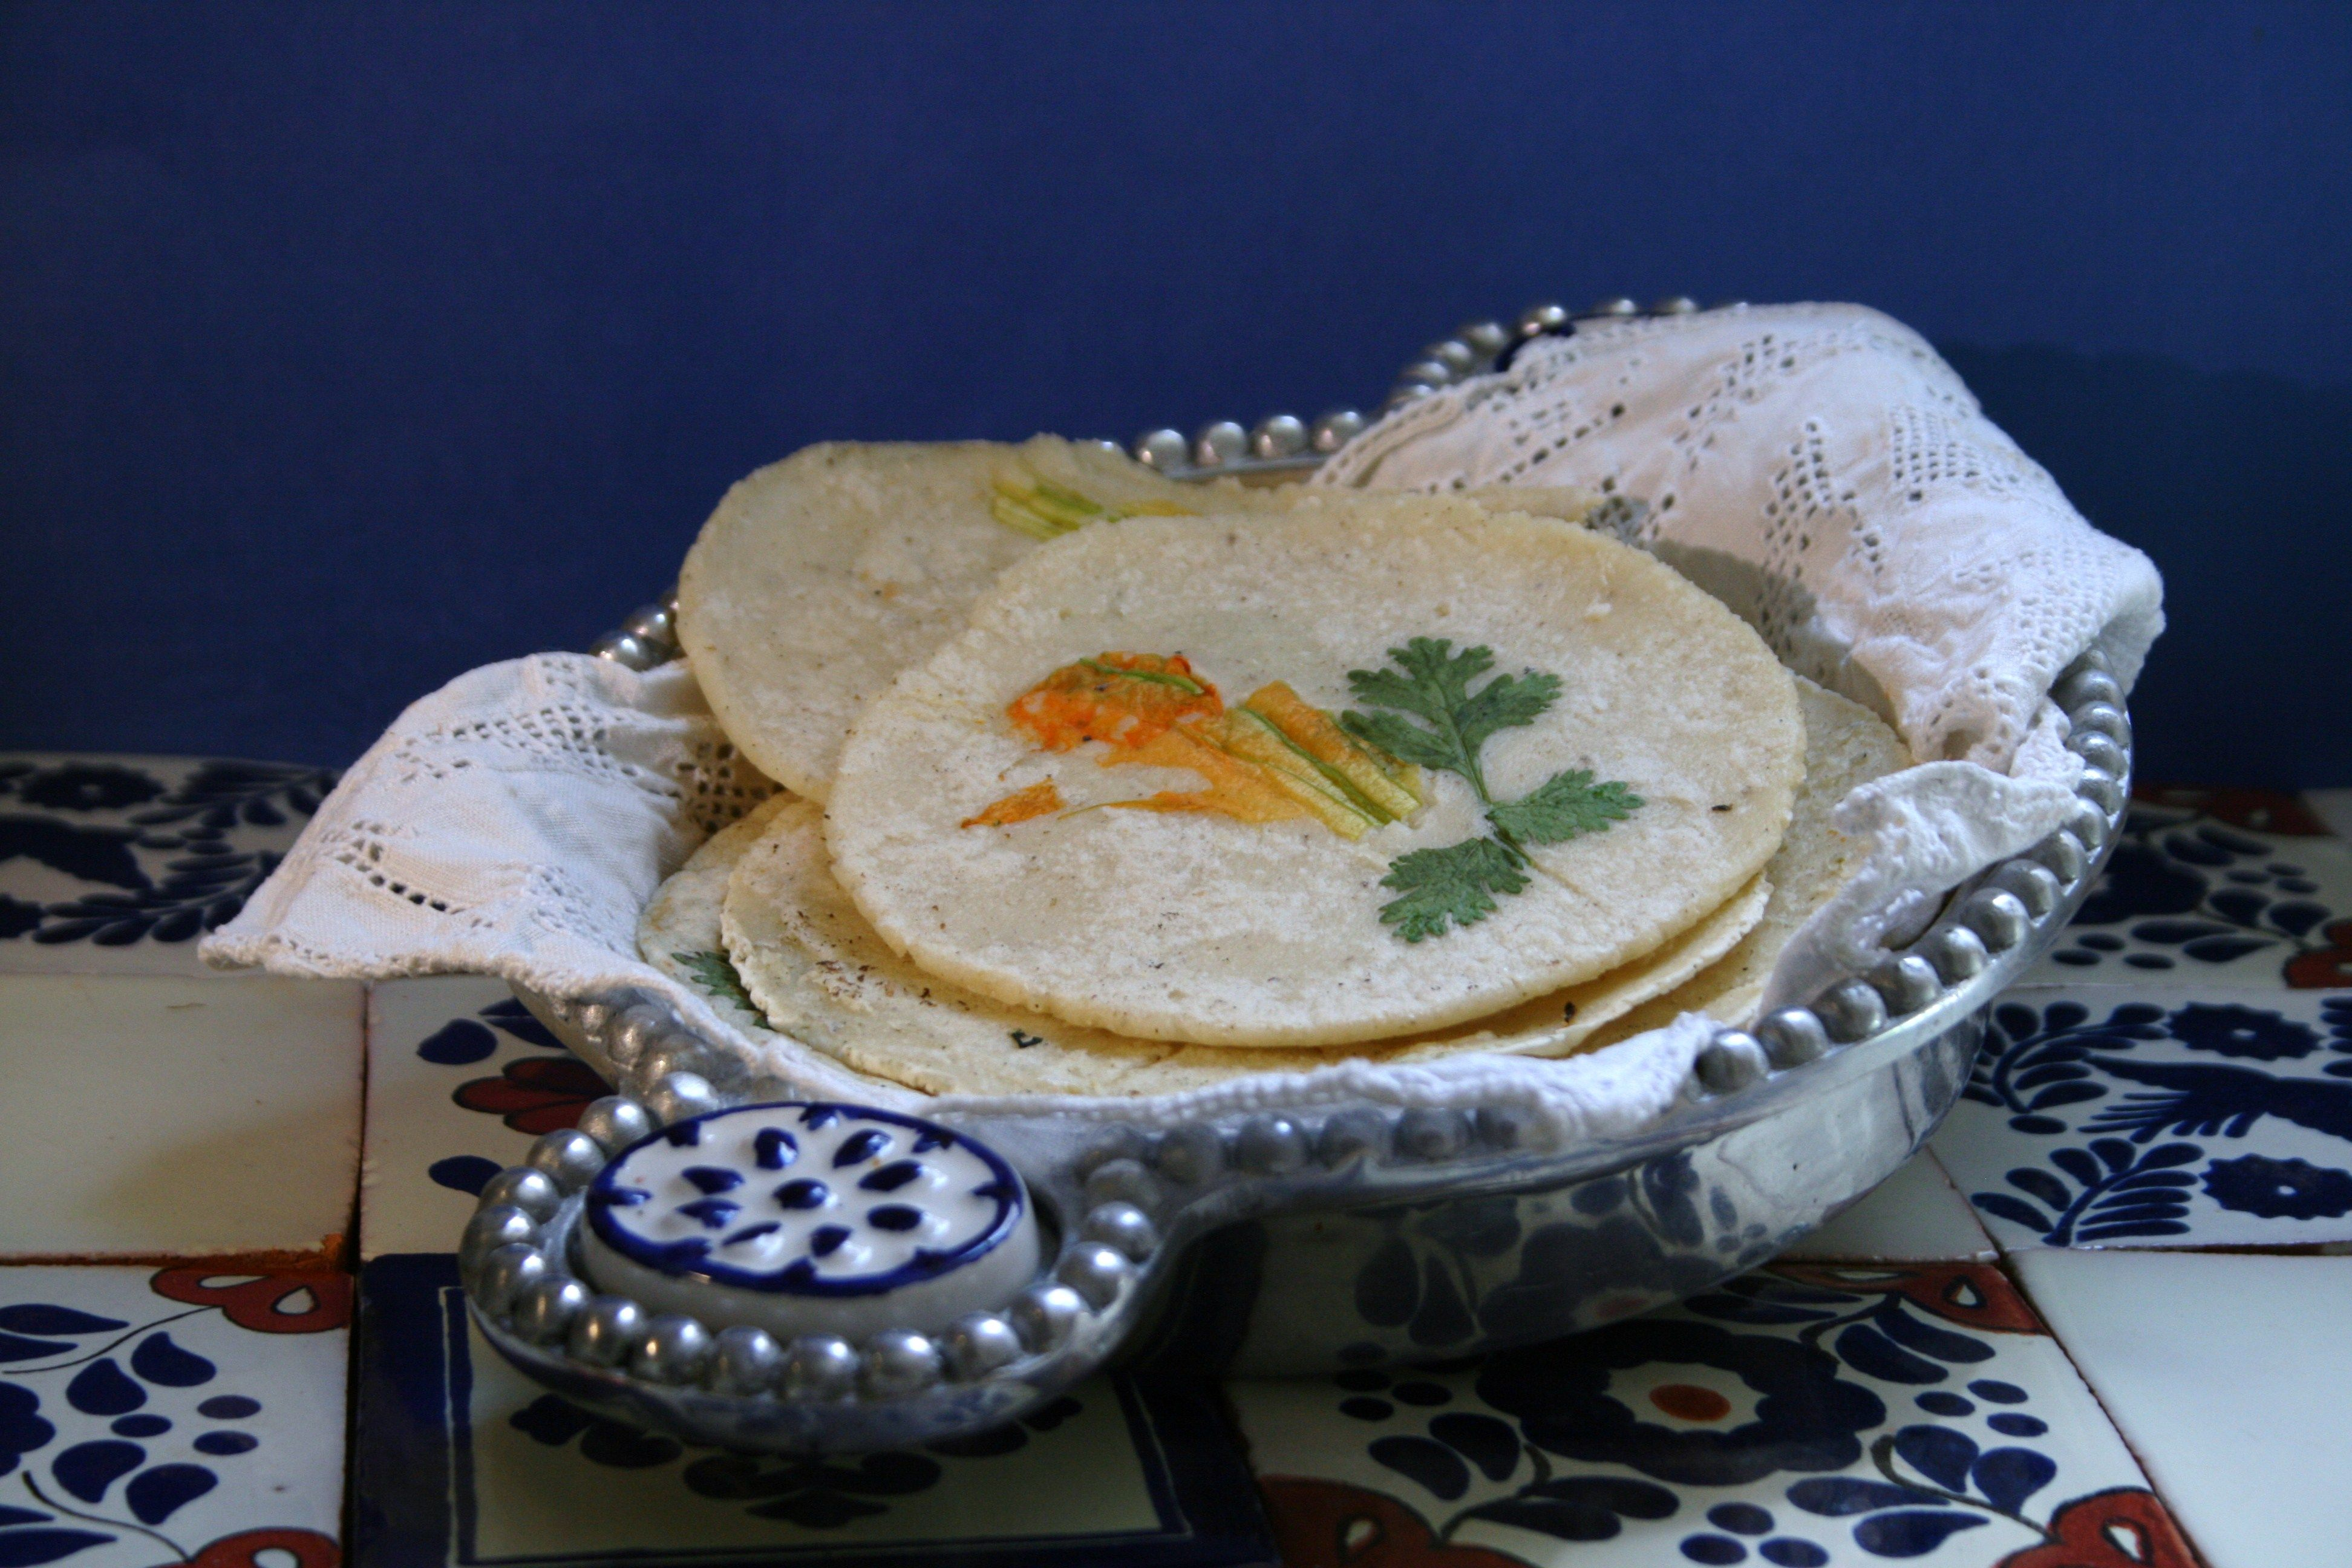 Original Spanische Tortilla Pin By Adriana Lahl On Celebraciones Mexicanas Gourmet Salt